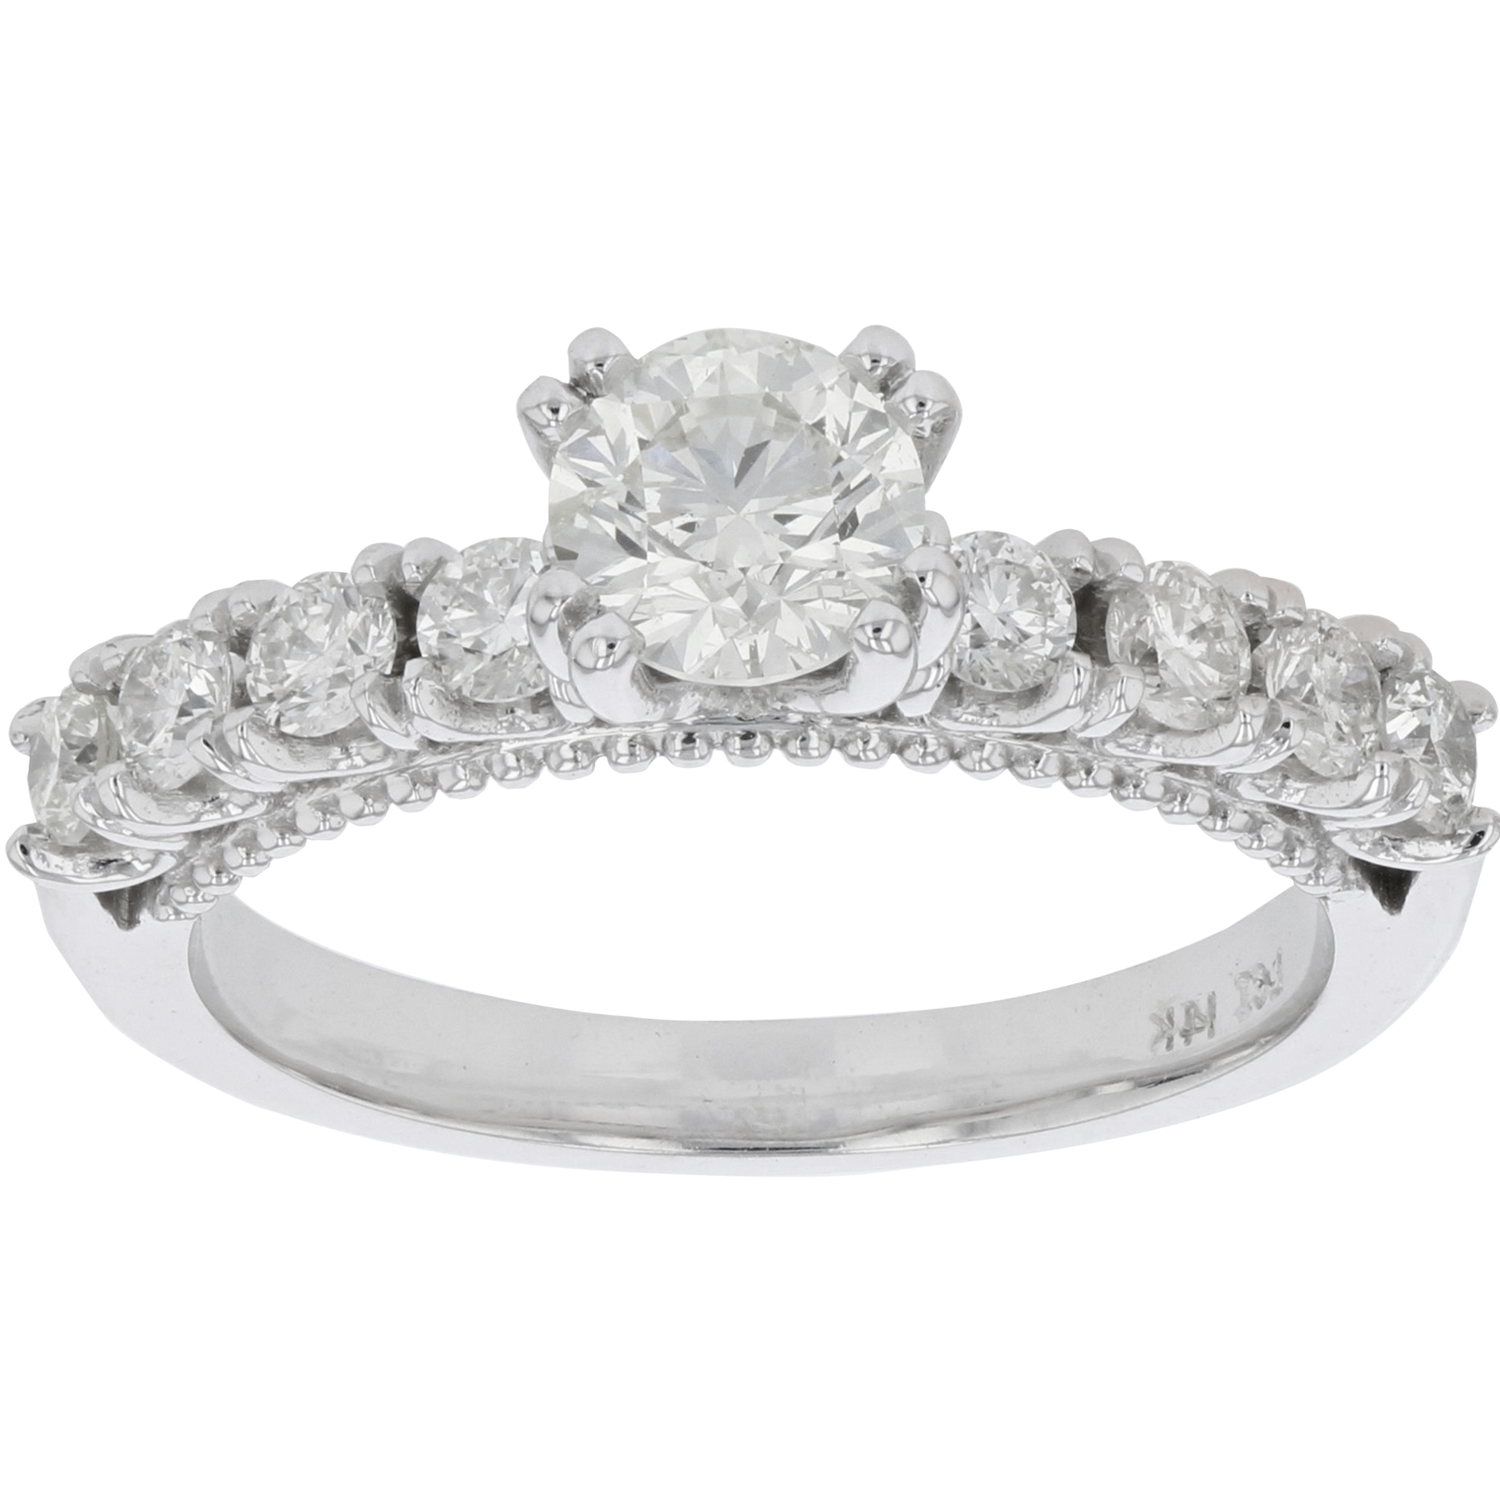 View 1.25xtw Duamond Engagement Ring in 14k White Gold